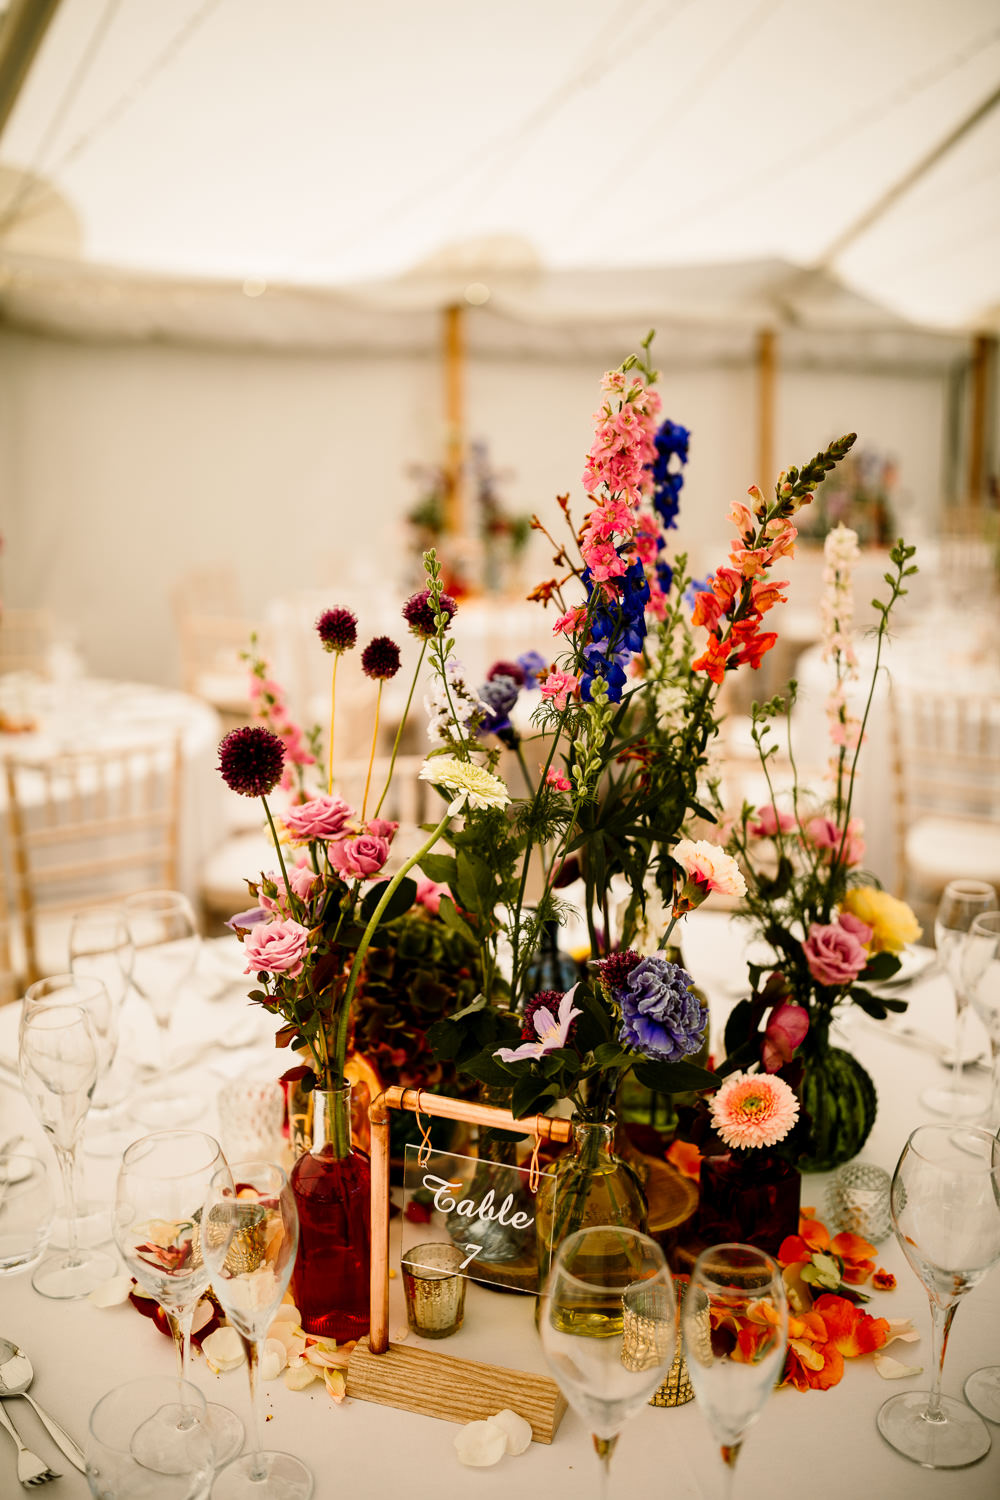 Centepiece Flowers Wild Flowers Decor Table Sperry Tent Wedding Hayley Baxter Photography